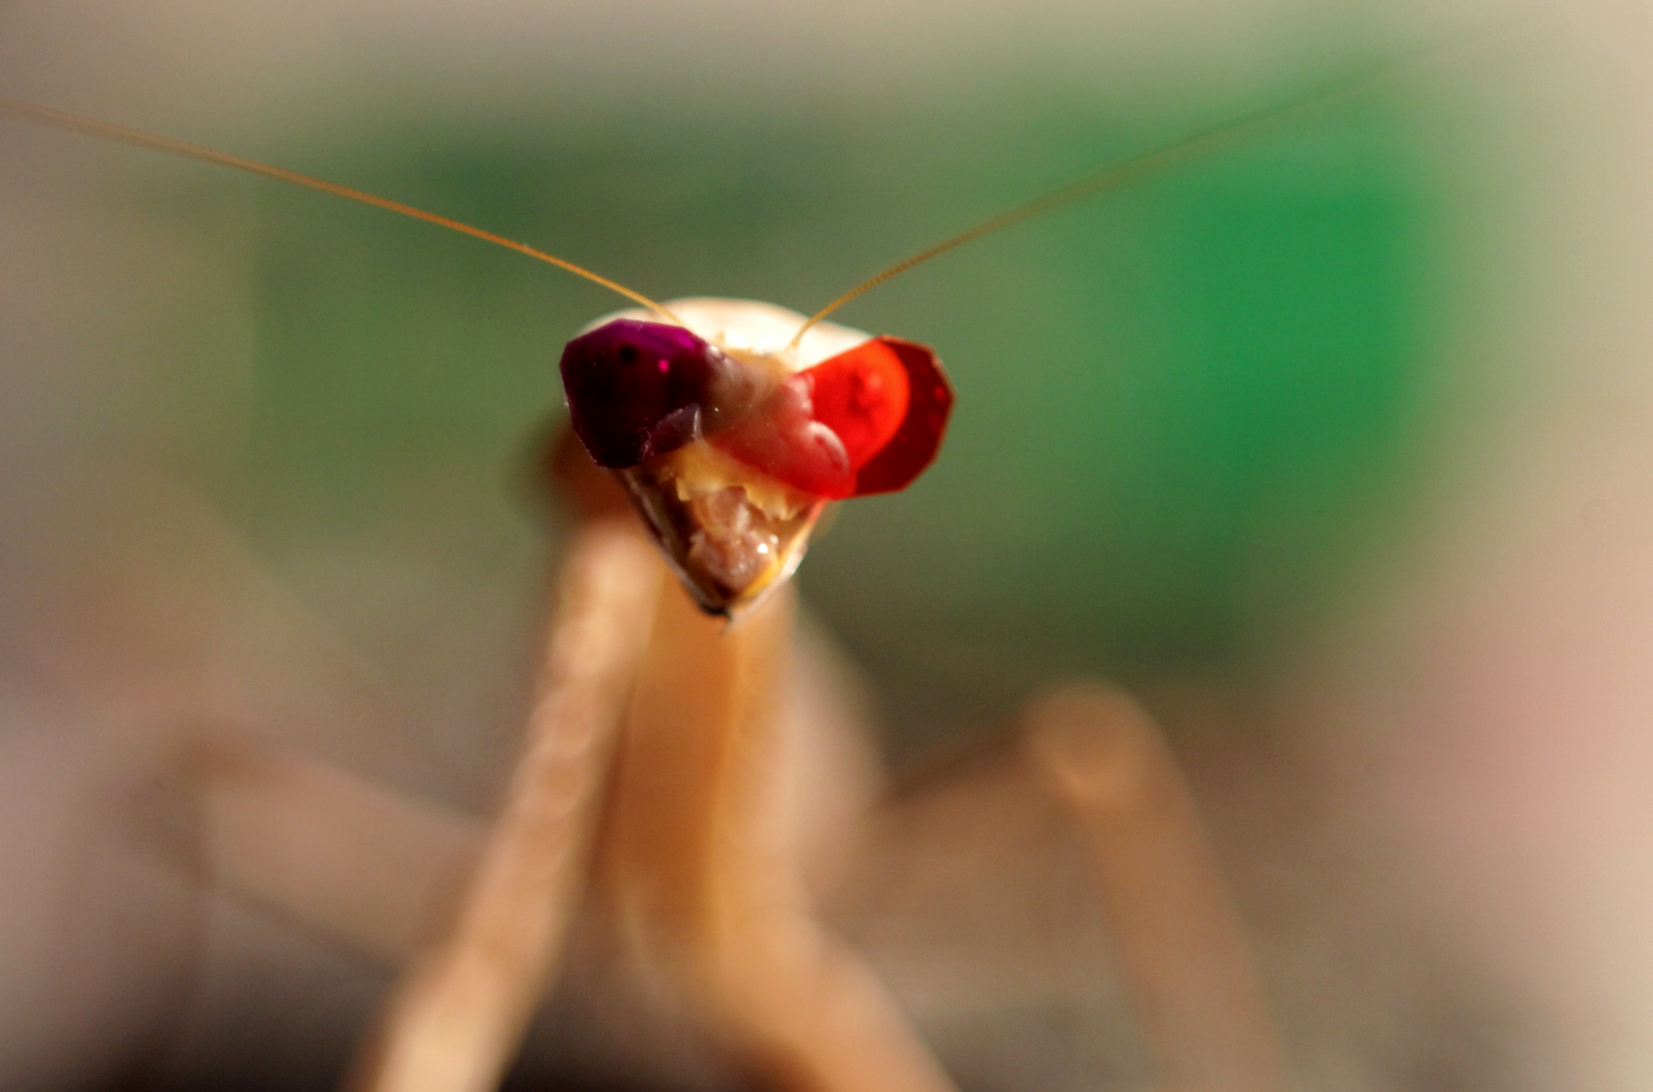 Tiny 3D Glasses On Mantis Reveal New Form of Stereo Vision